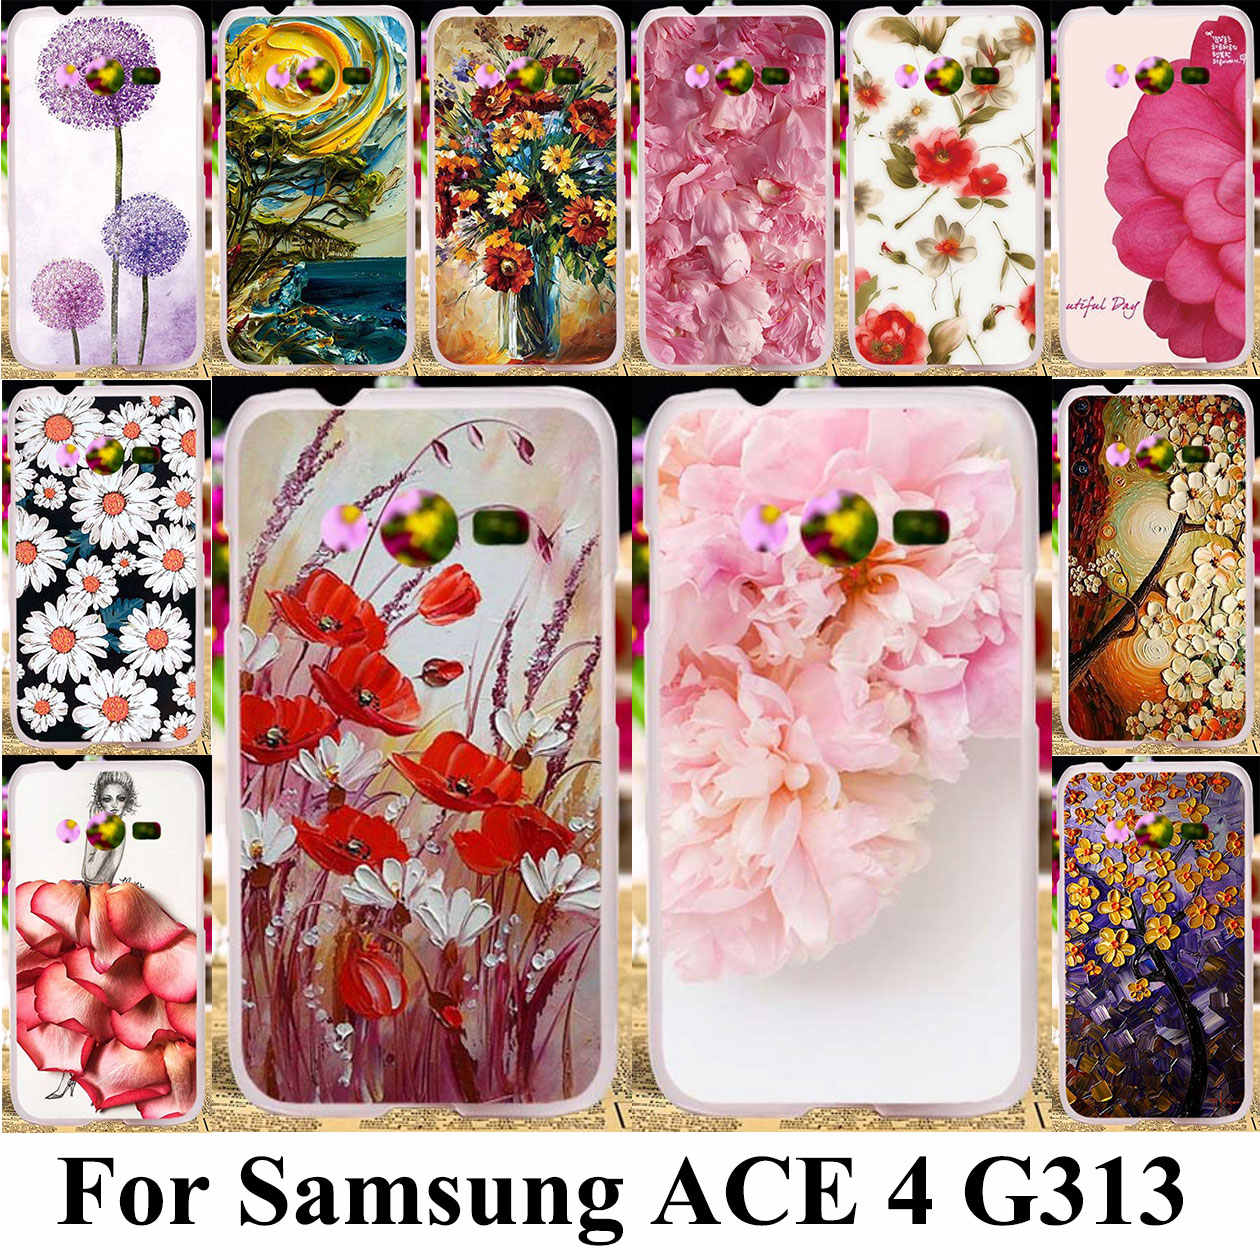 3D DIY Silicone Plastic Phone Cover Case For Samsung Galaxy ACE 4 NXT G313 G318H Trend 2 Lite G313H SM-G313H G318F Bag Shell